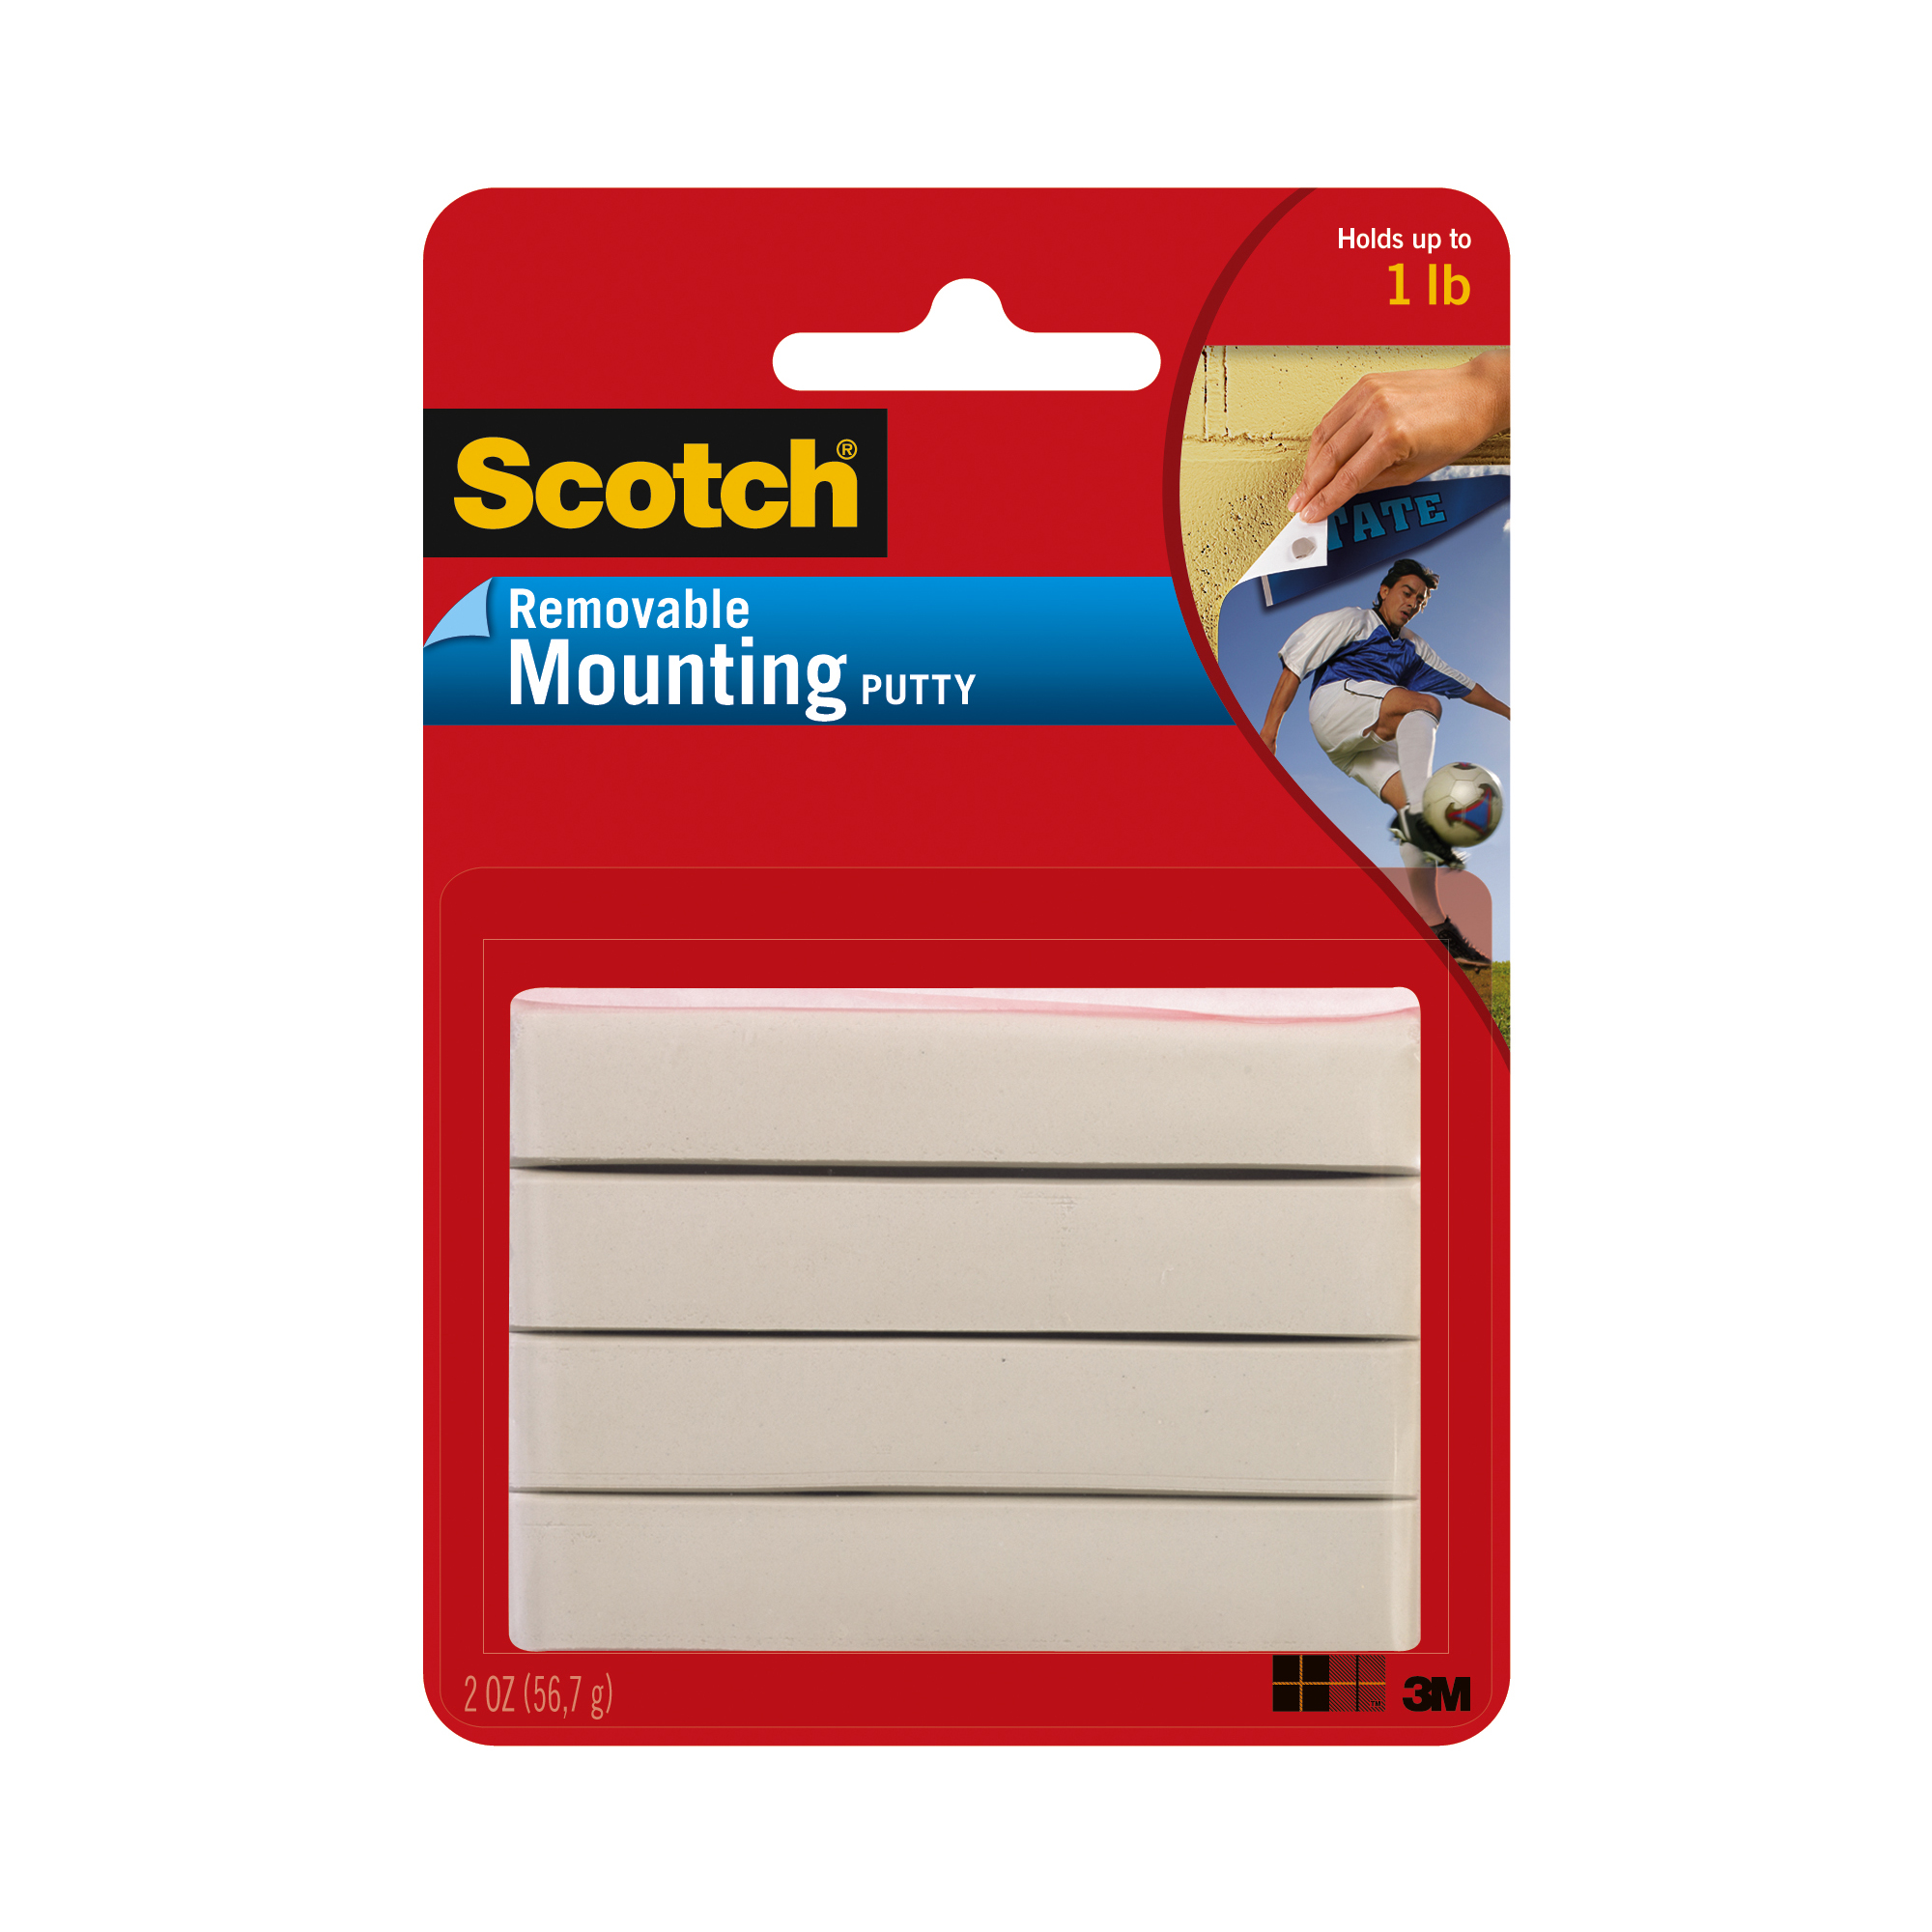 Scotch Mounting Putty, Removable 2 oz., White